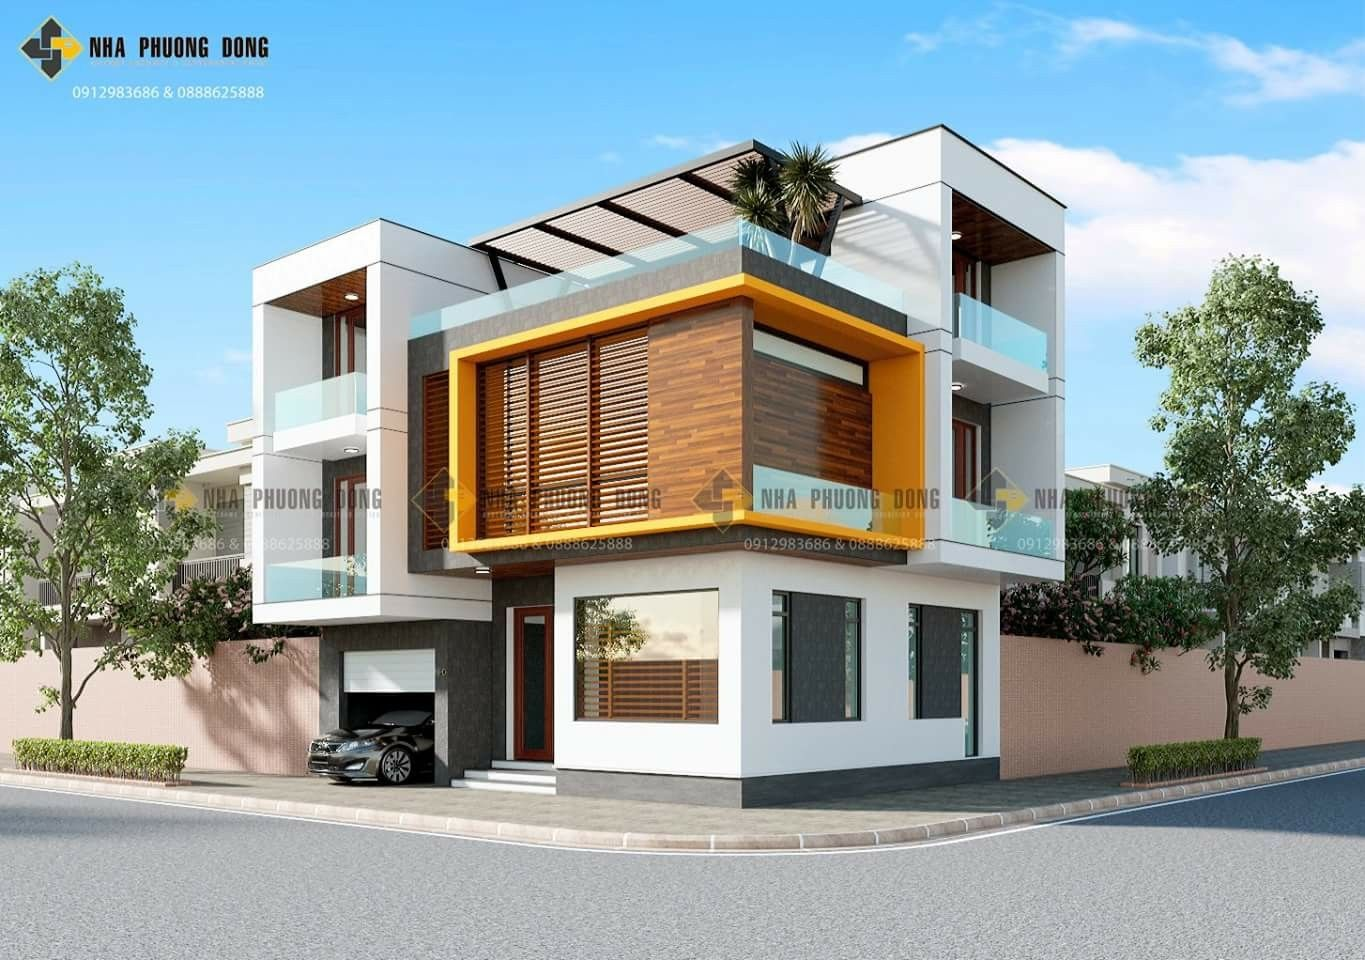 Architectural engineering building elevation awesome house home goods plans also pin by mohamed tausif on design ideas rh pinterest